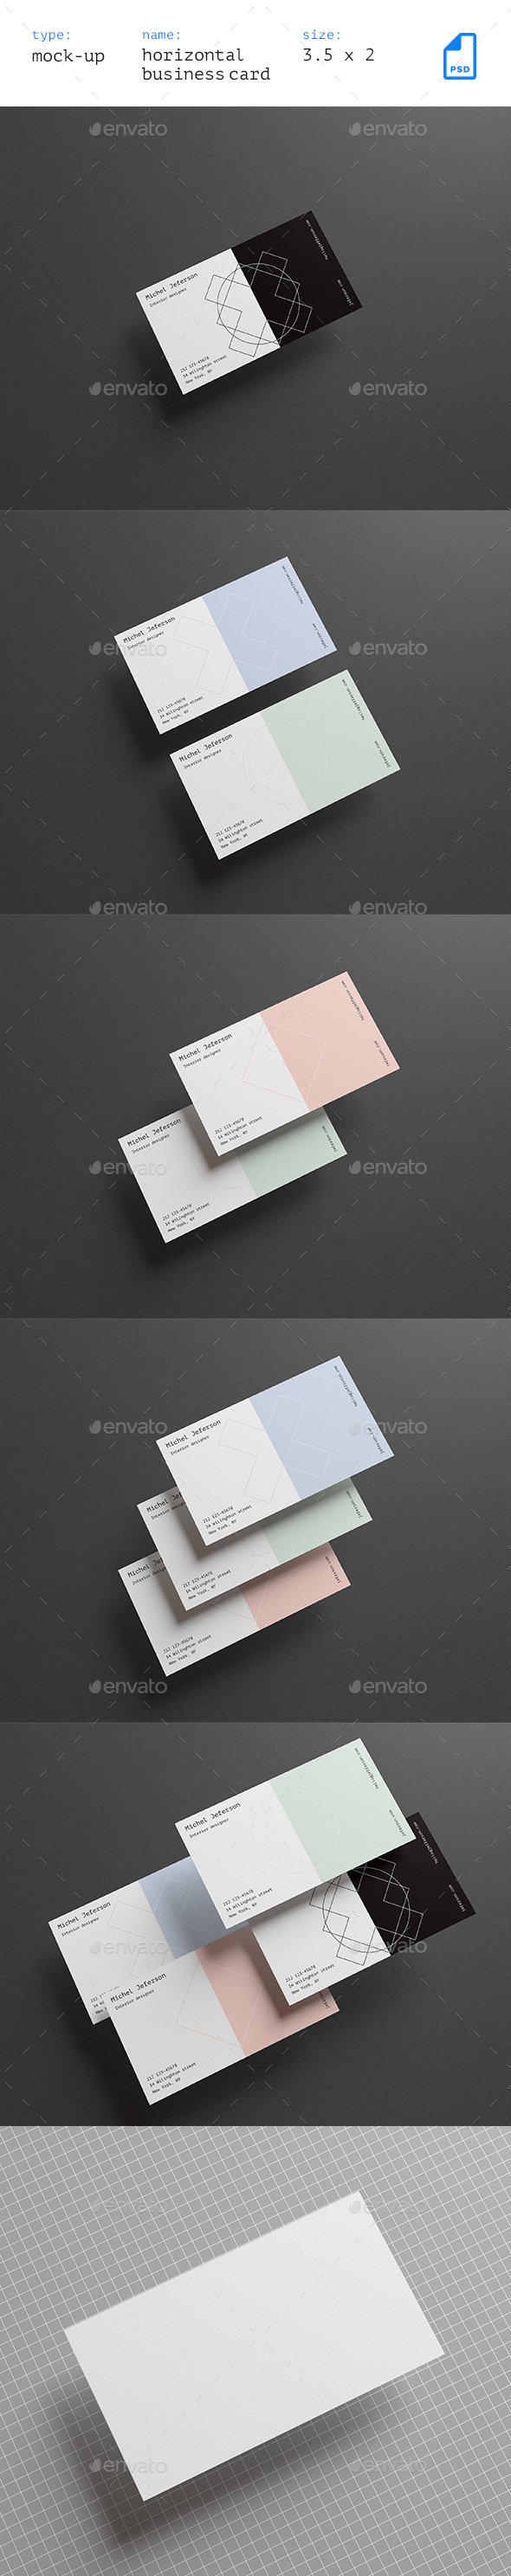 GraphicRiver Horizontal Business Cards Mock-up Vol 2 21117258